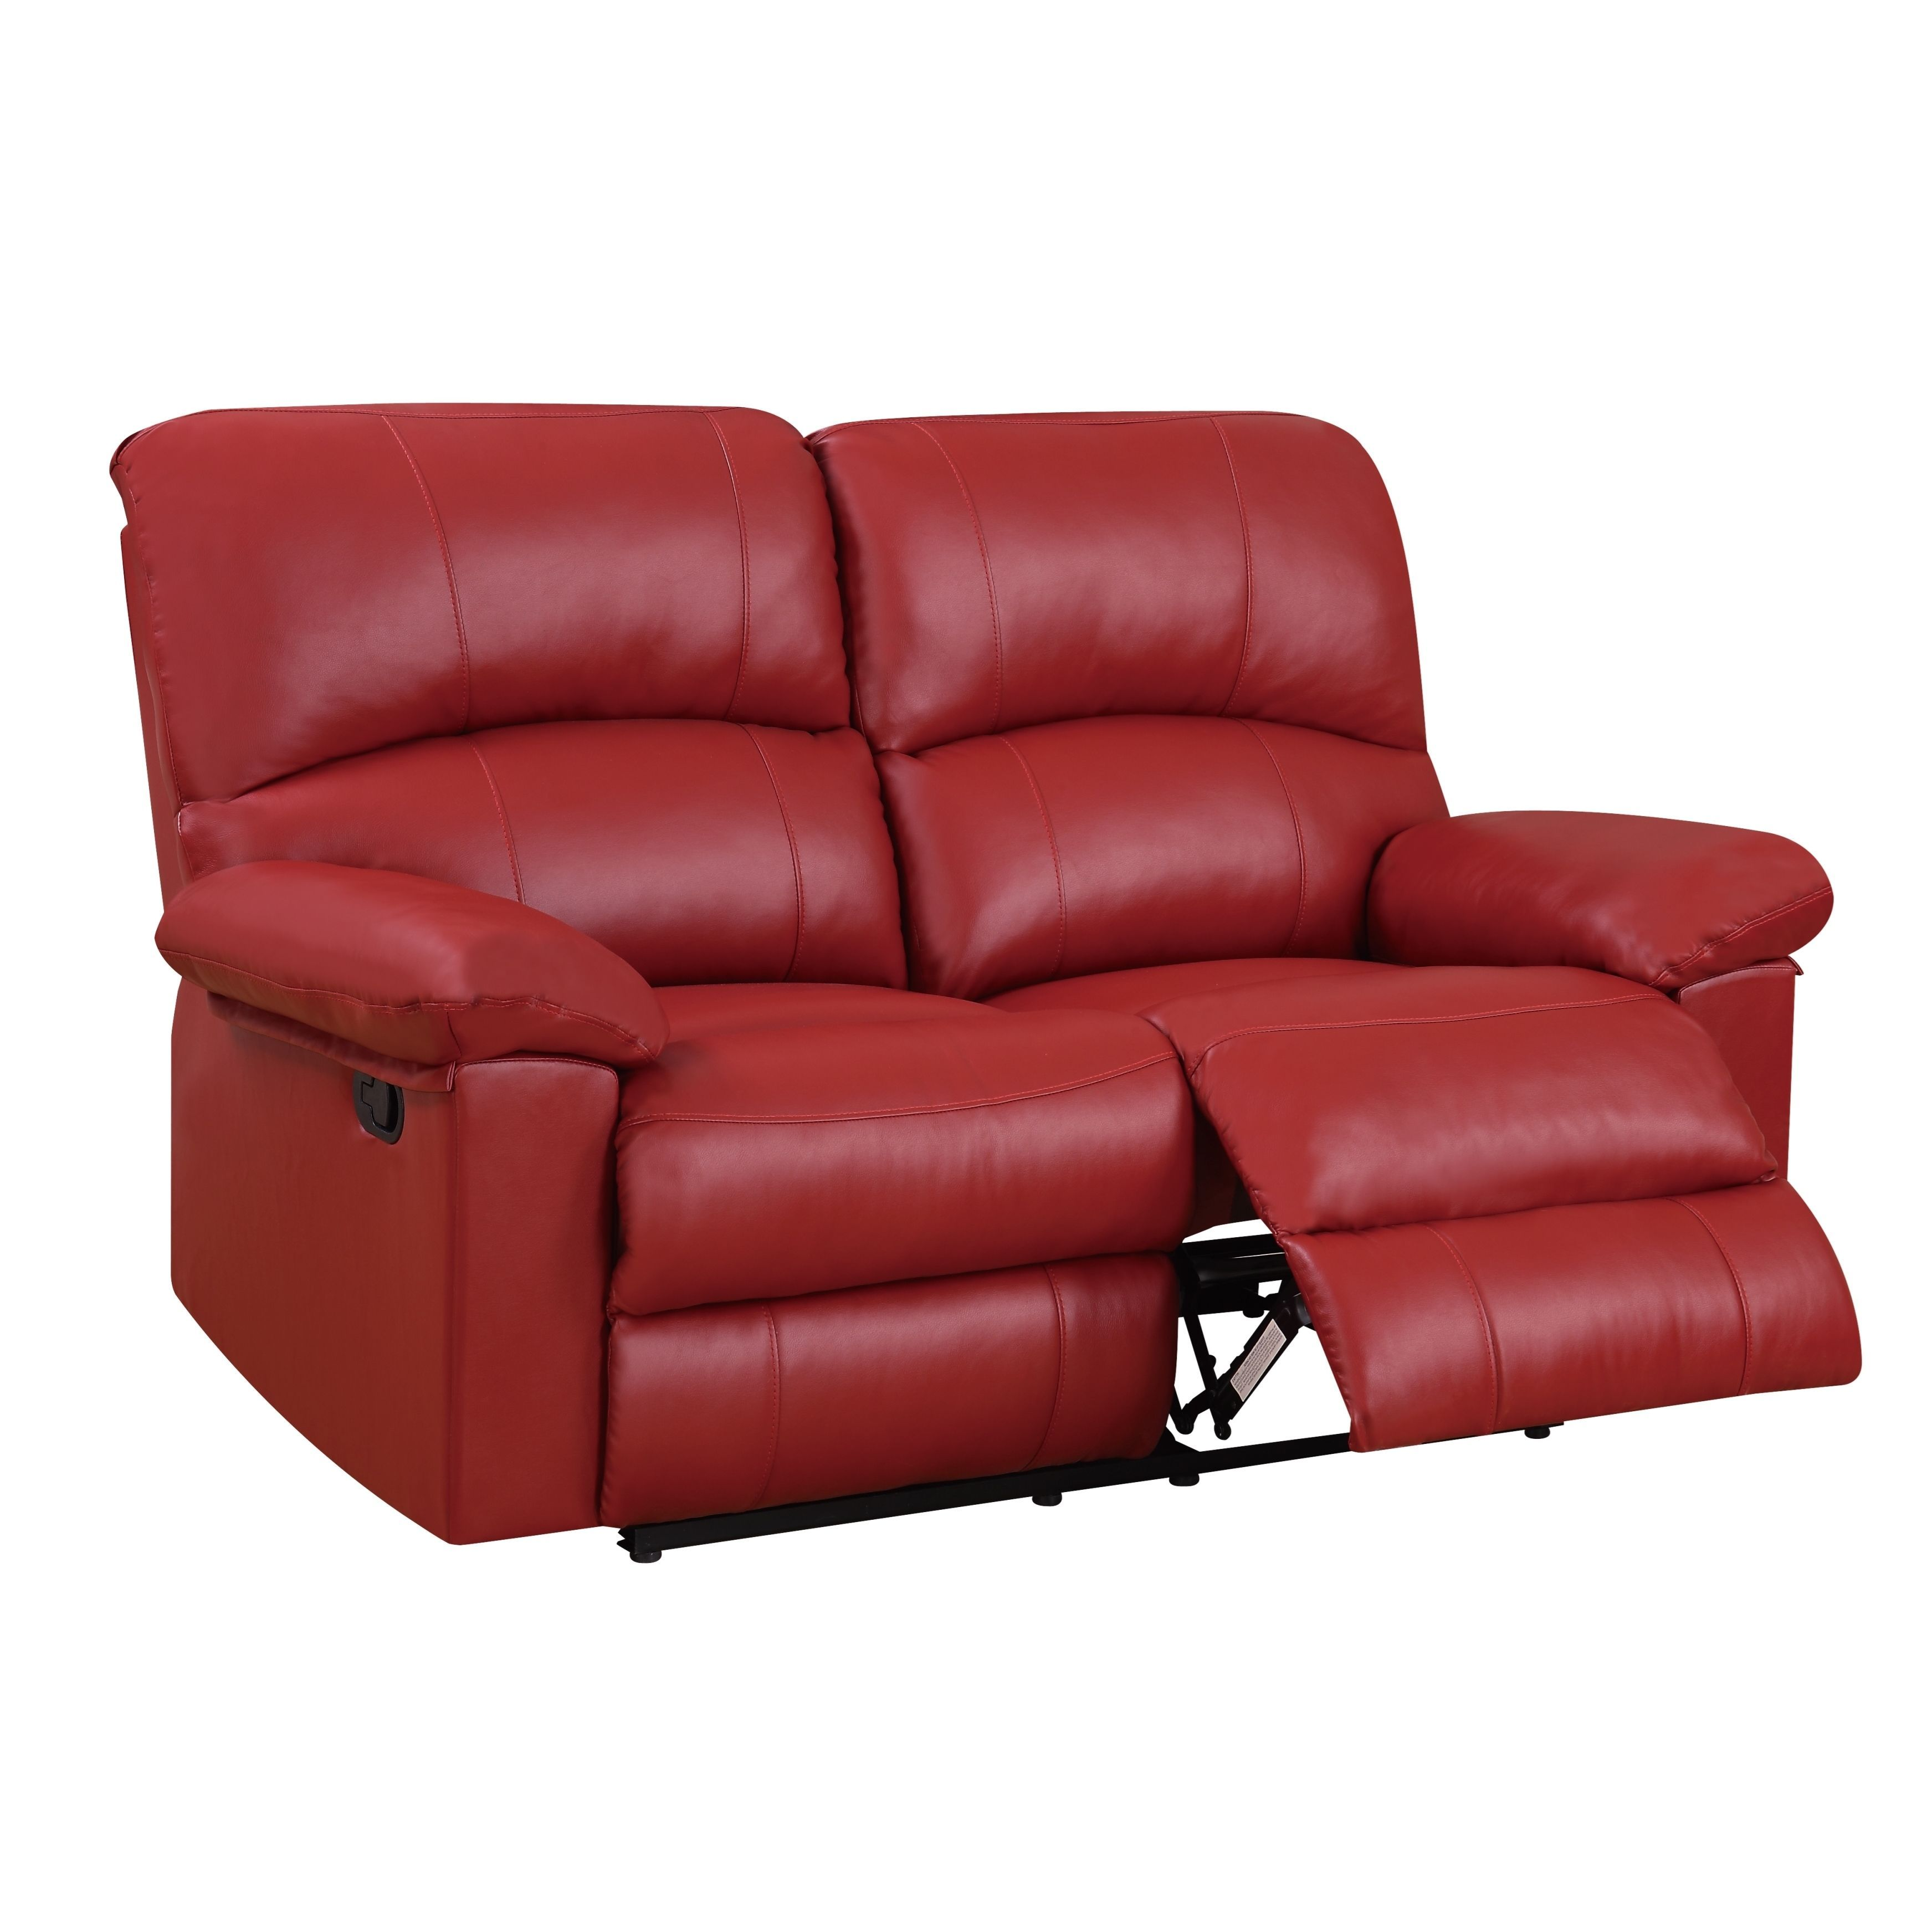 Terrific Global Reclining Loveseat Products Furniture Recliner Ocoug Best Dining Table And Chair Ideas Images Ocougorg